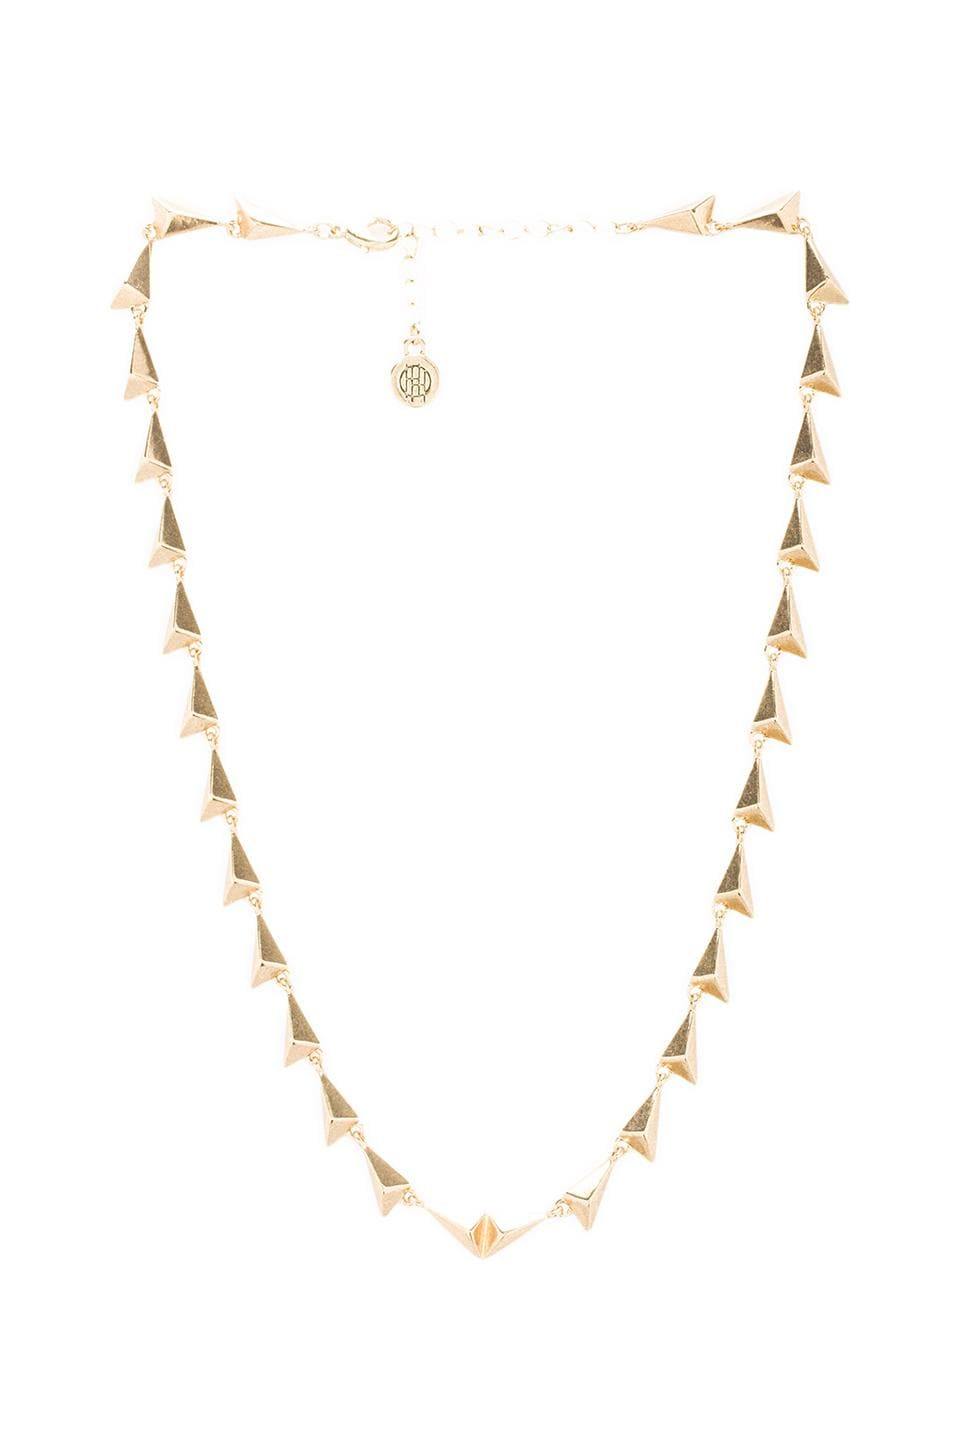 House of Harlow 1960 House of Harlow Dynamic Necklace in Gold